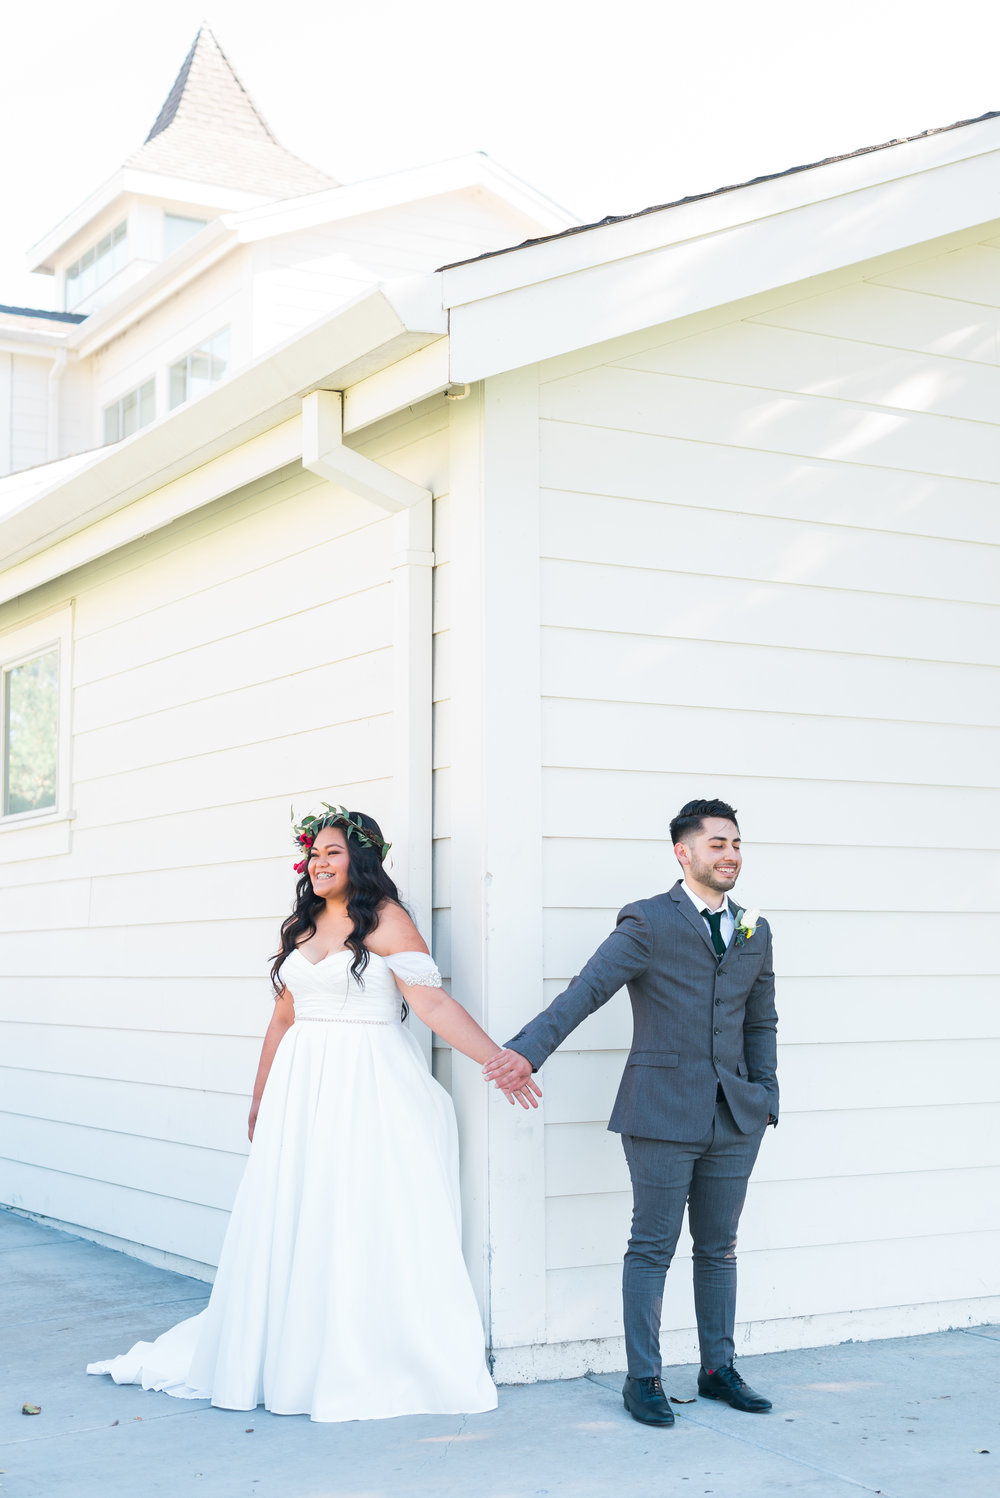 riverside-southern-california-wedding-photographer-ica-images-firstlook-first-prayer